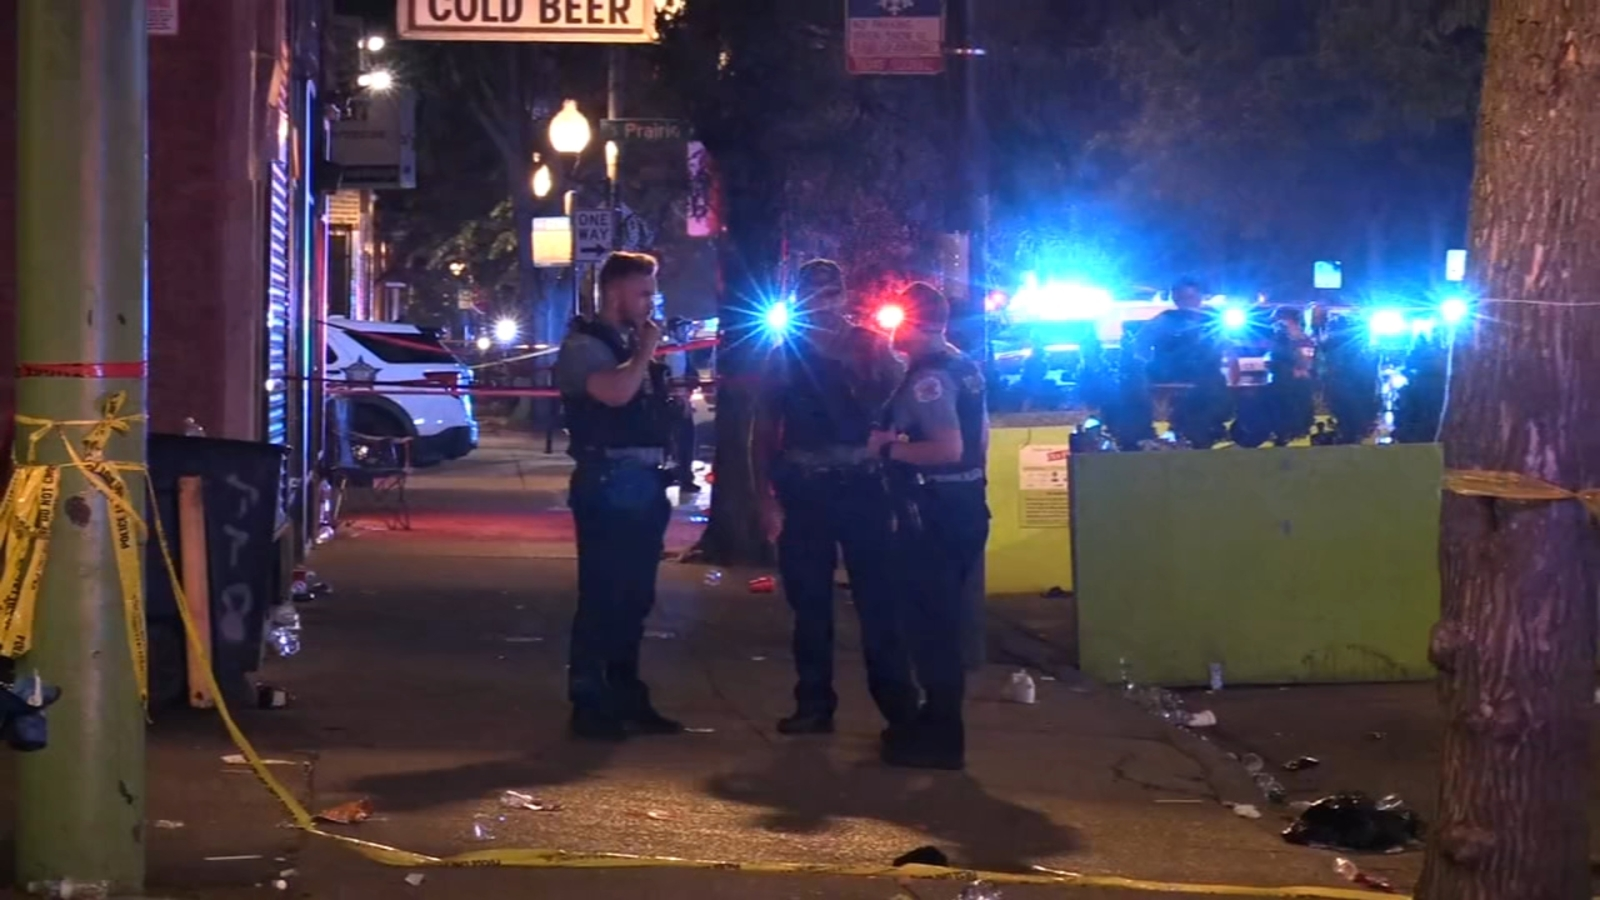 Chicago Mass Shootings: Mayor Lightfoot, businesses, community concerned as city reopens from pandemic